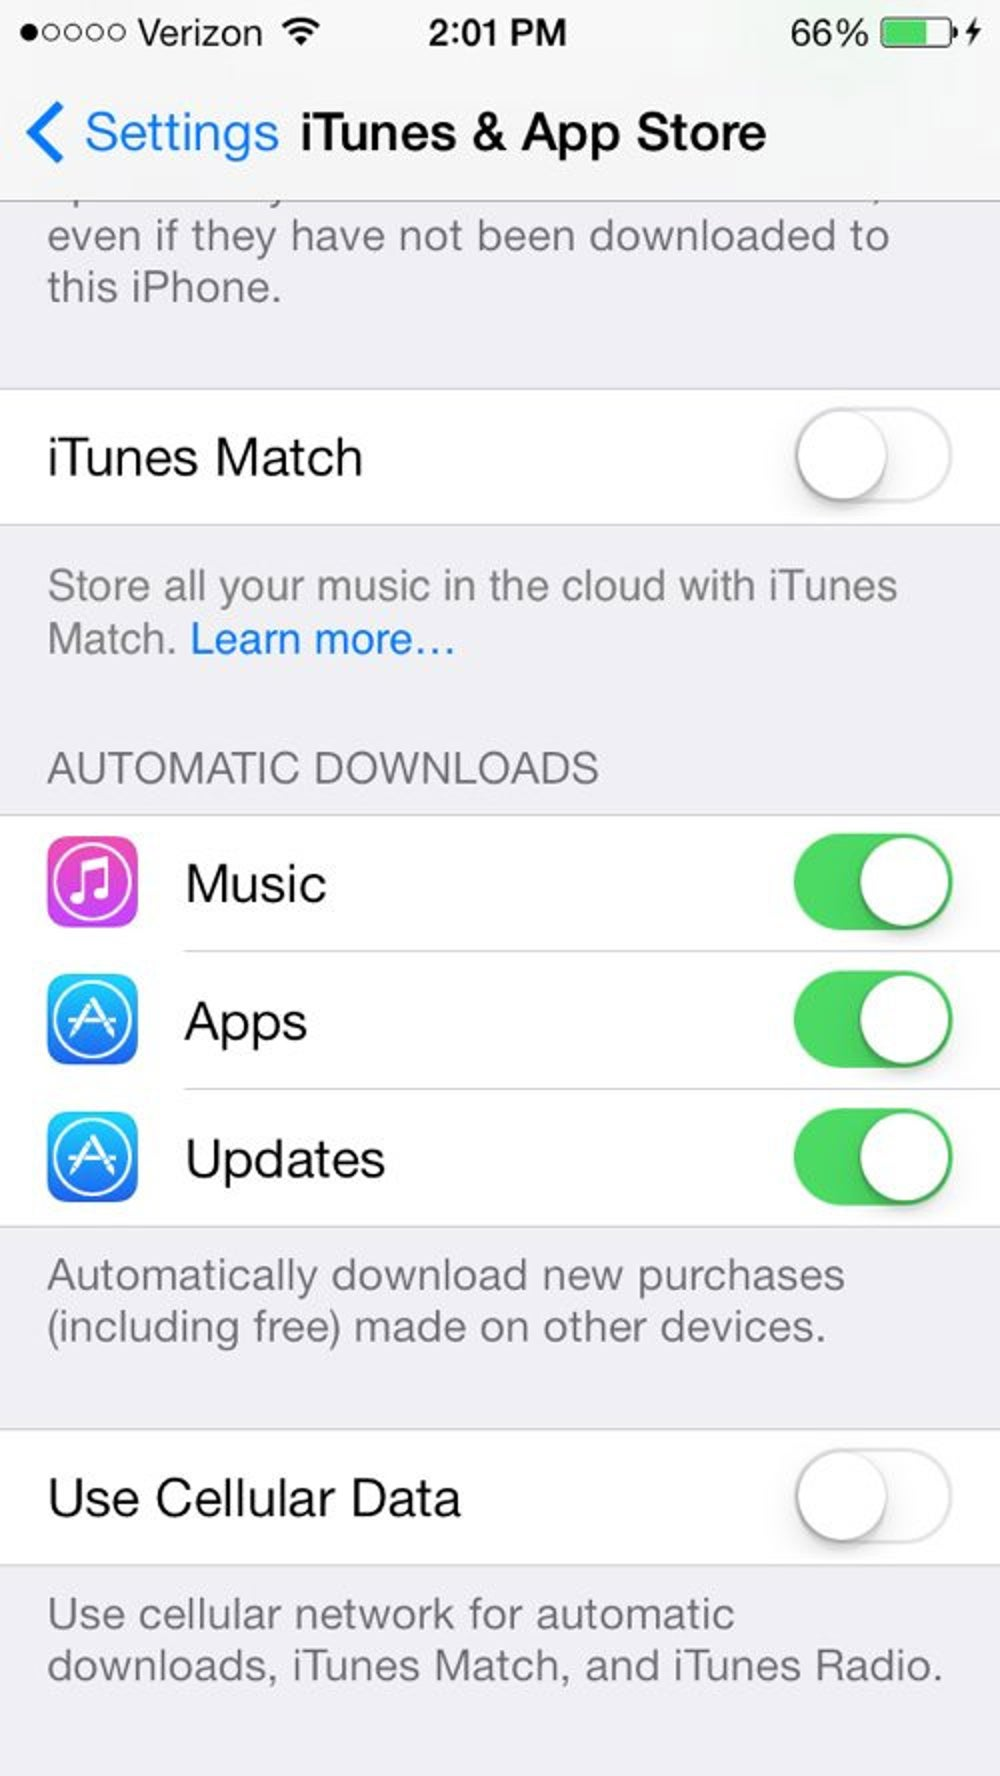 """You can tell iOS 7 to automatically update your apps without opening the App Store. Go to Settings > iTunes & App Store and switch the """"Updates"""" option to green under the Automatic Downloads section."""